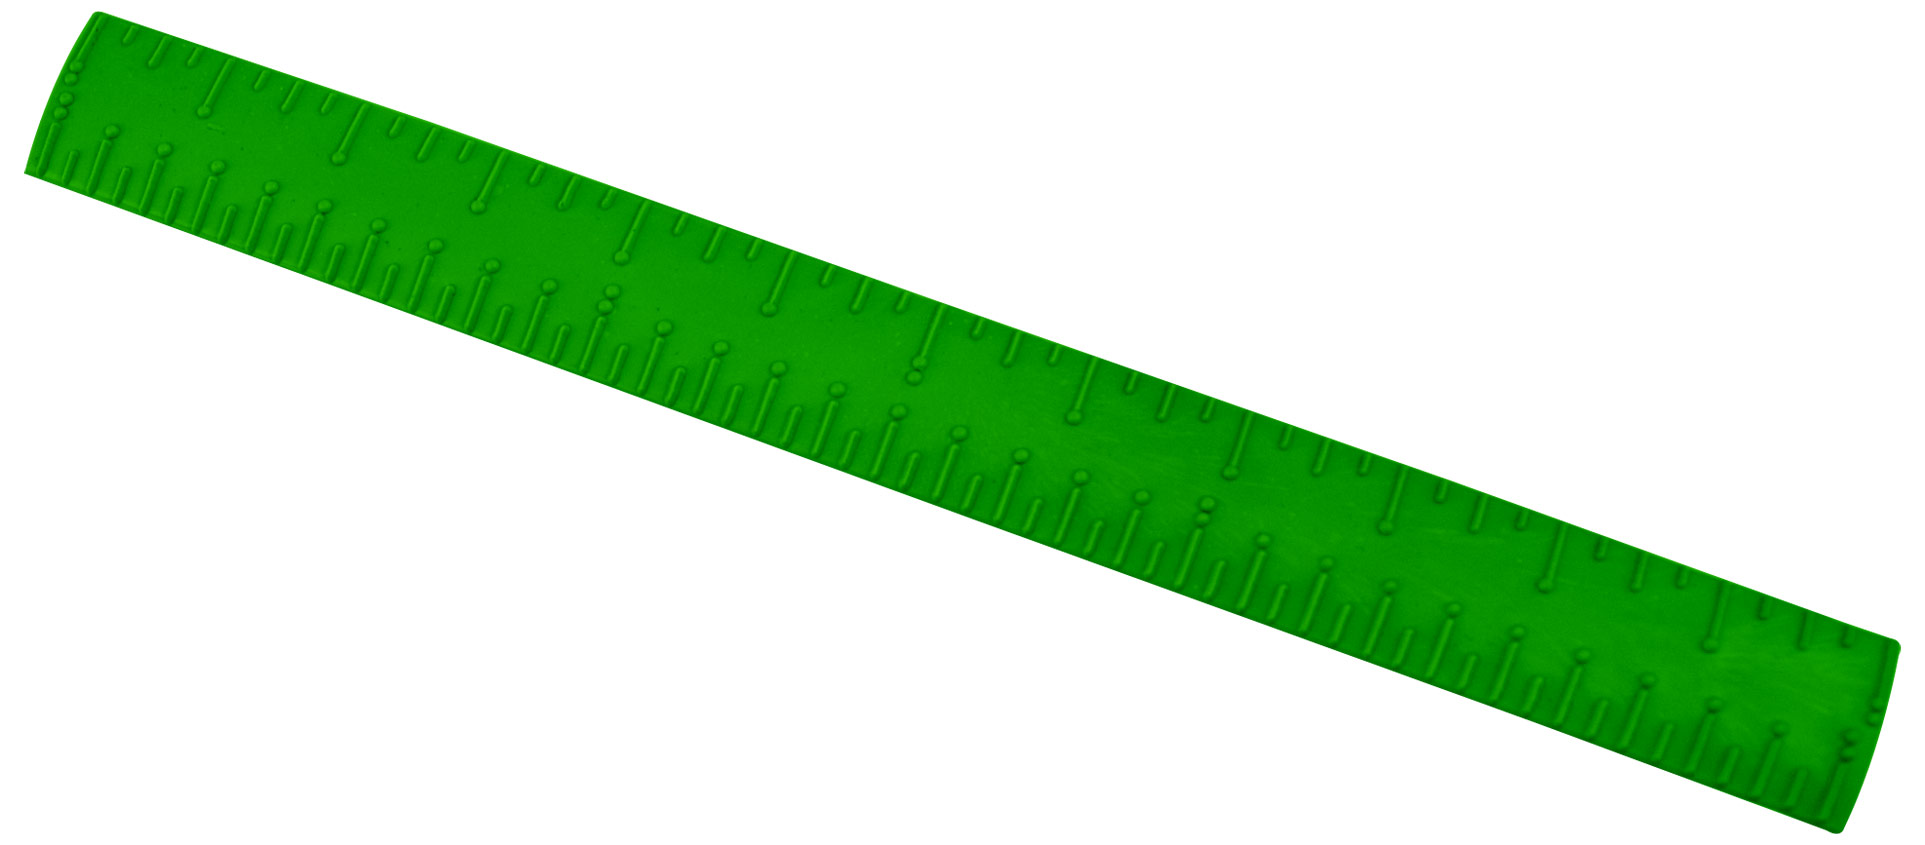 Braille Ruler - Plastic - 12-inch